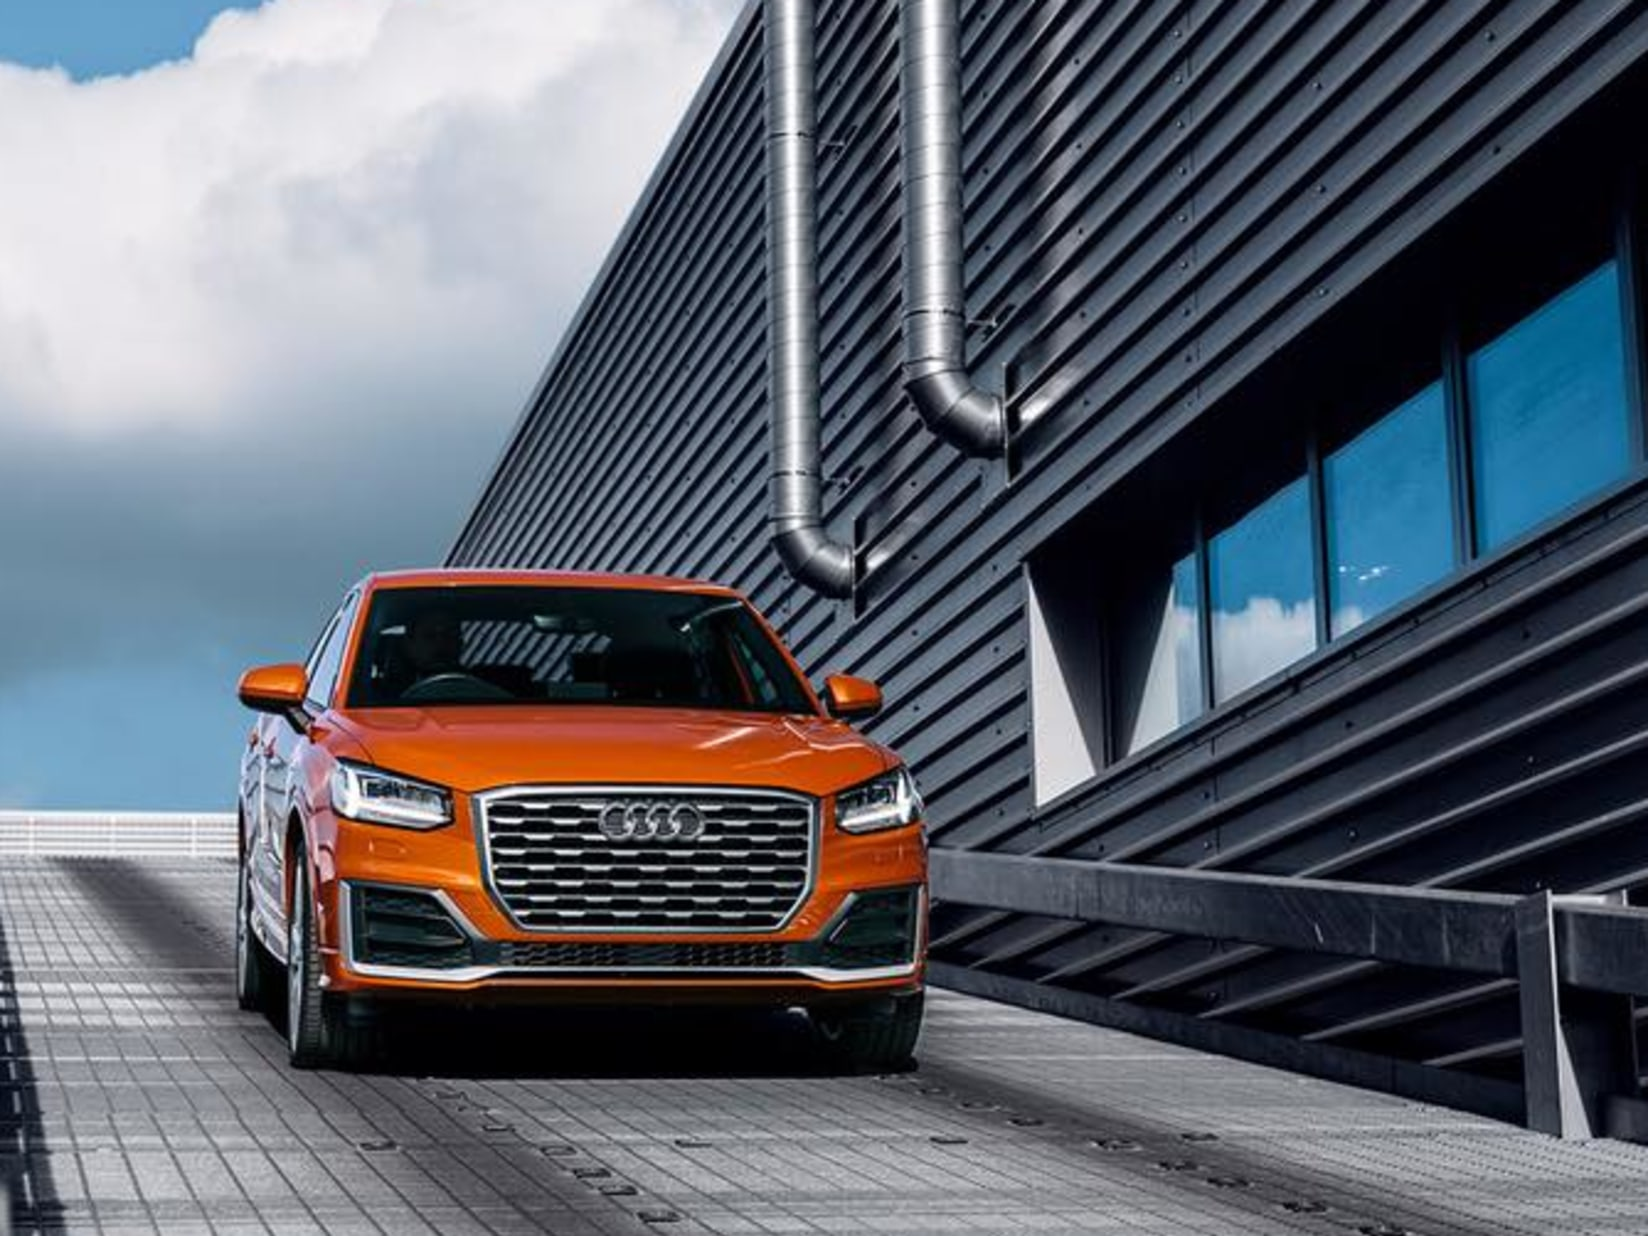 New Audi Cars And Suvs Ready To Drive Away At Highland Audi Inverness